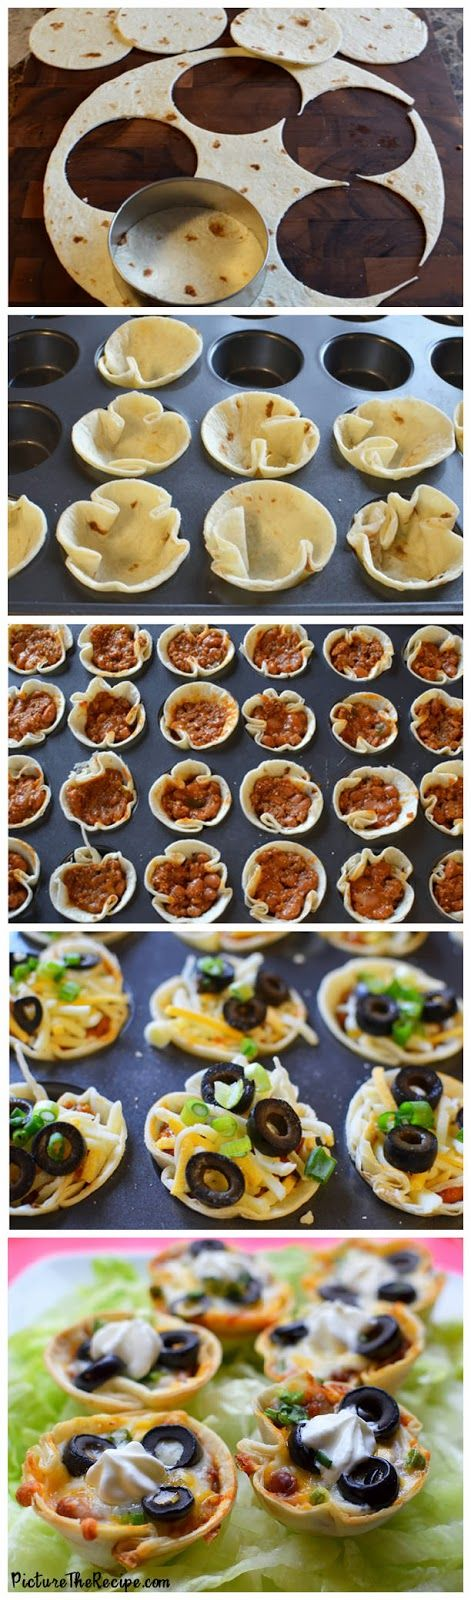 How to Host the Best Party {On a Budget!}| Party Ideas, Hosting Tips and Tricks, How to Host a Party, Party Hosting Hacks, Party Hacks, How to Be the Best Hostess, Popular Pin